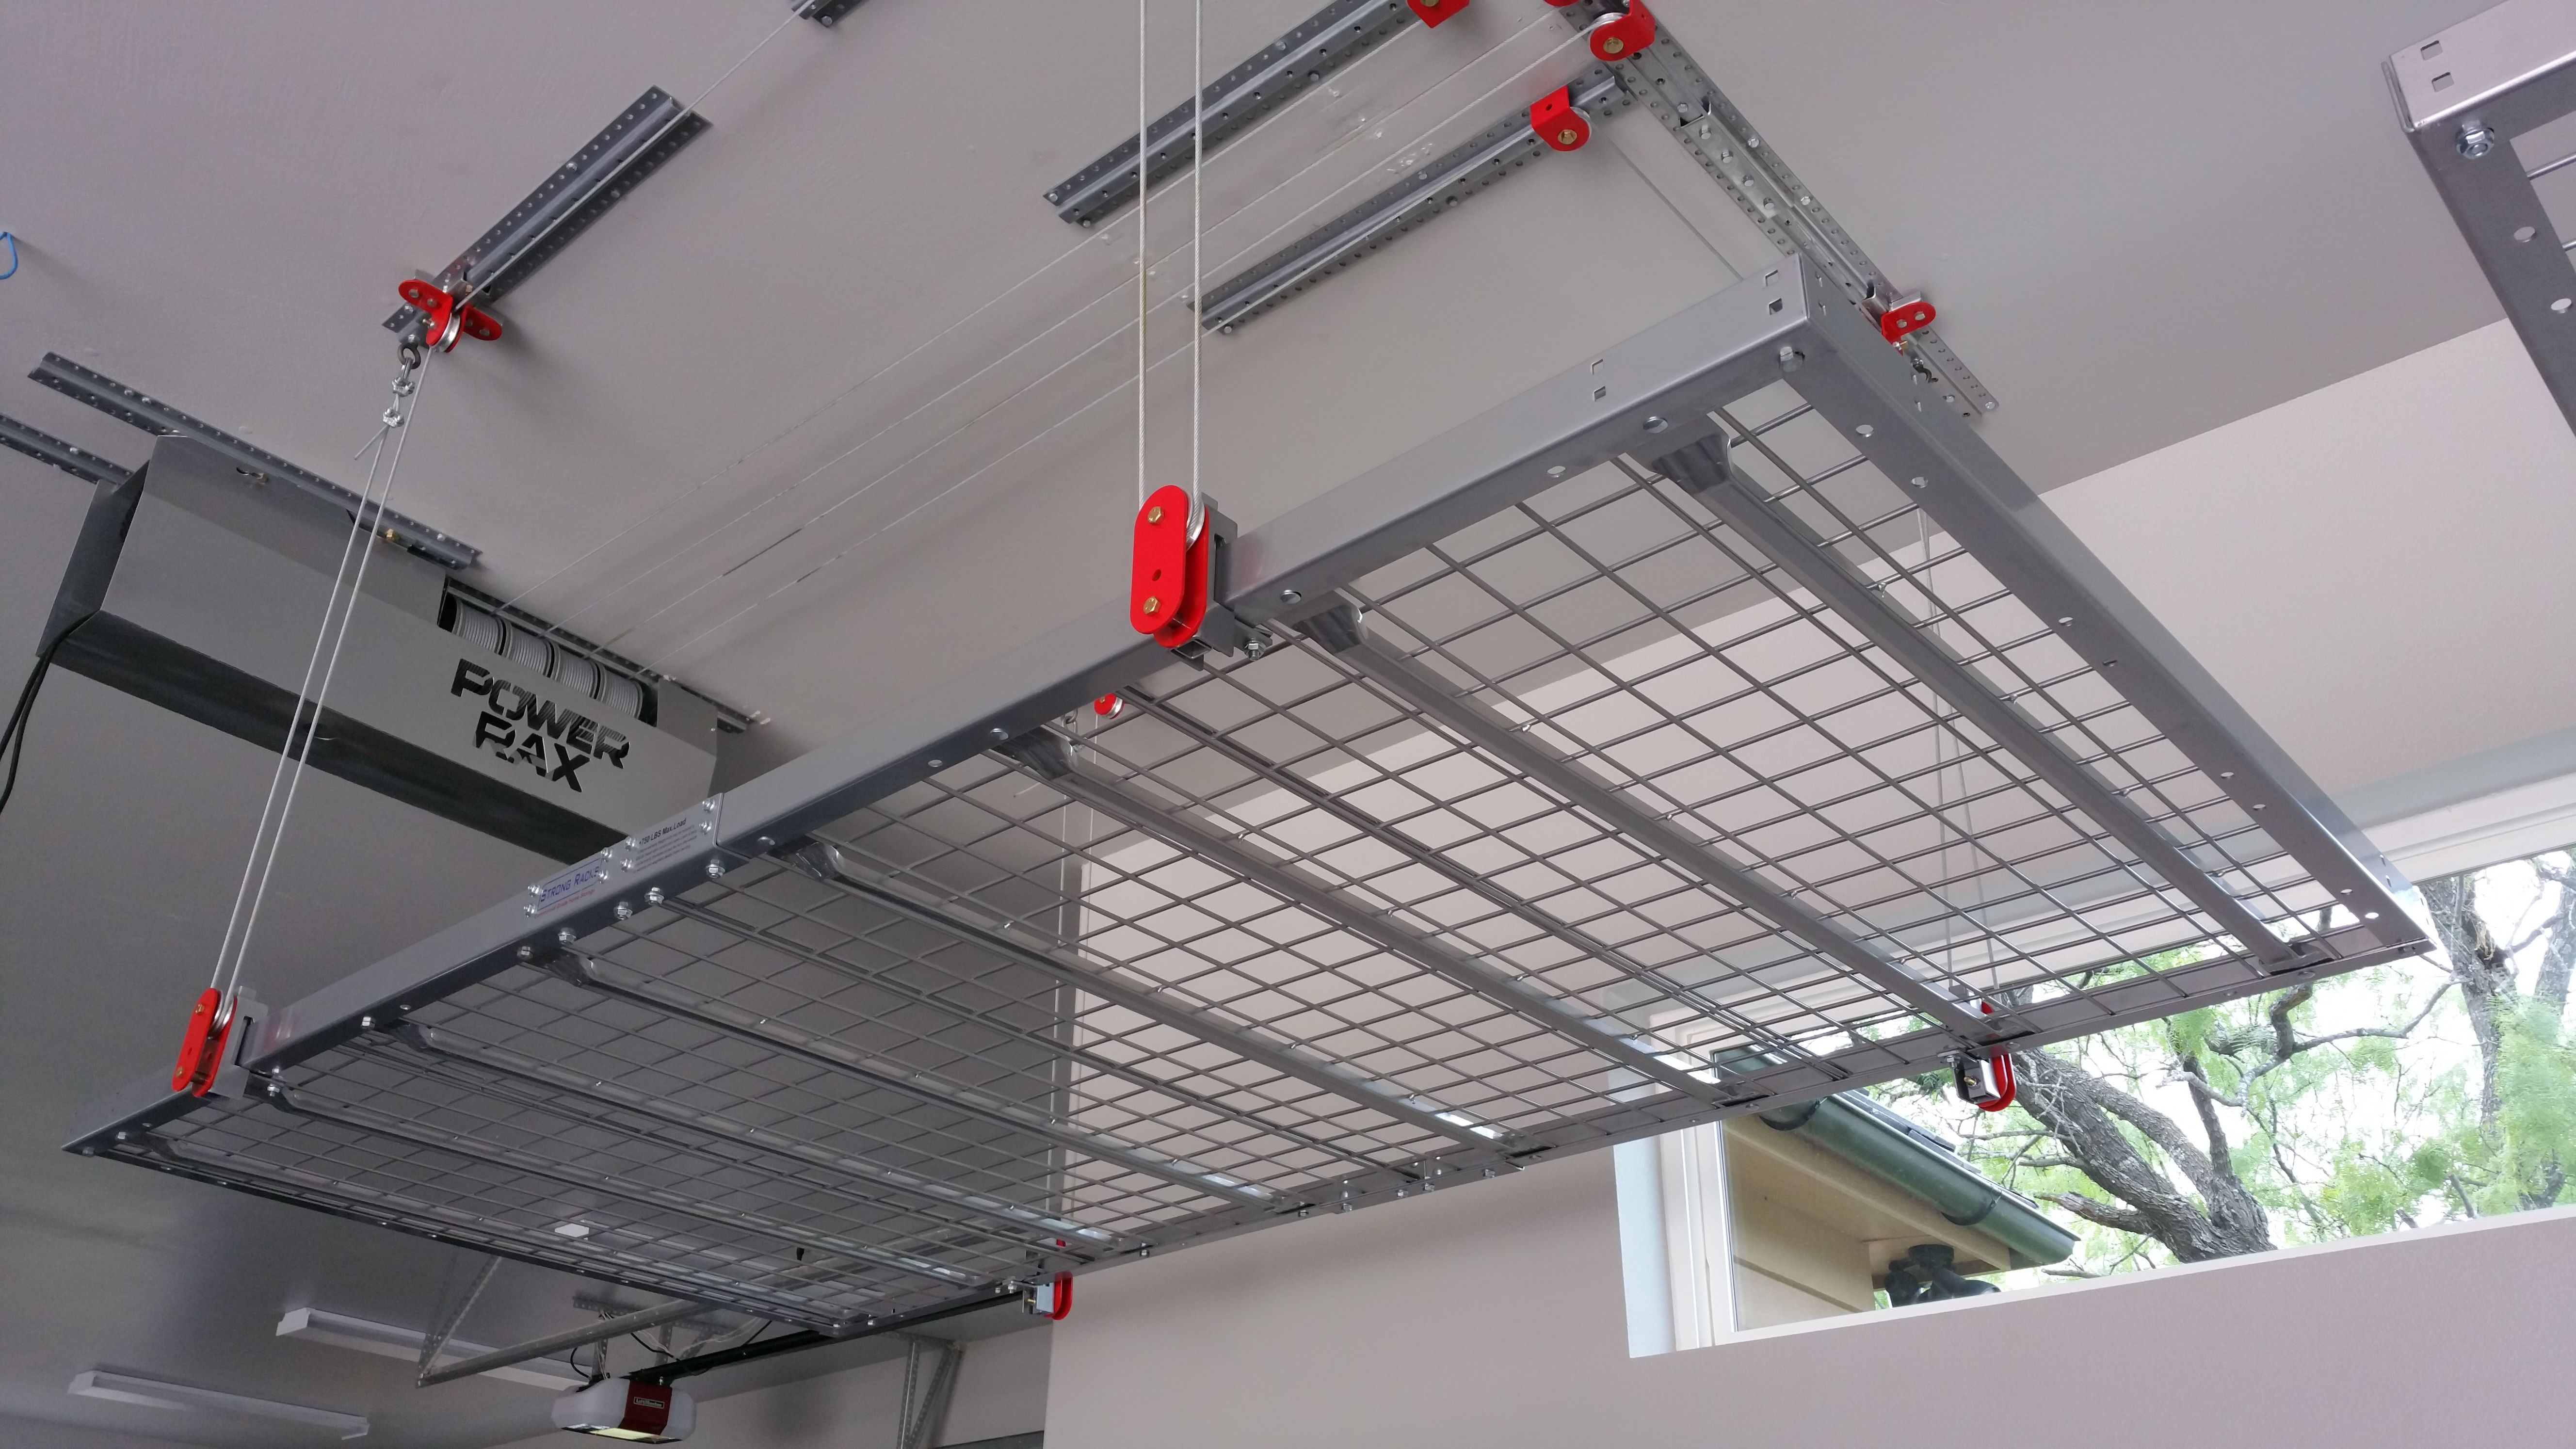 Close Up View Of Our 4 X 8 500 Lb Capacity Motorized Storage Platform Garage Ceiling Storage Garage Storage Ceiling Storage